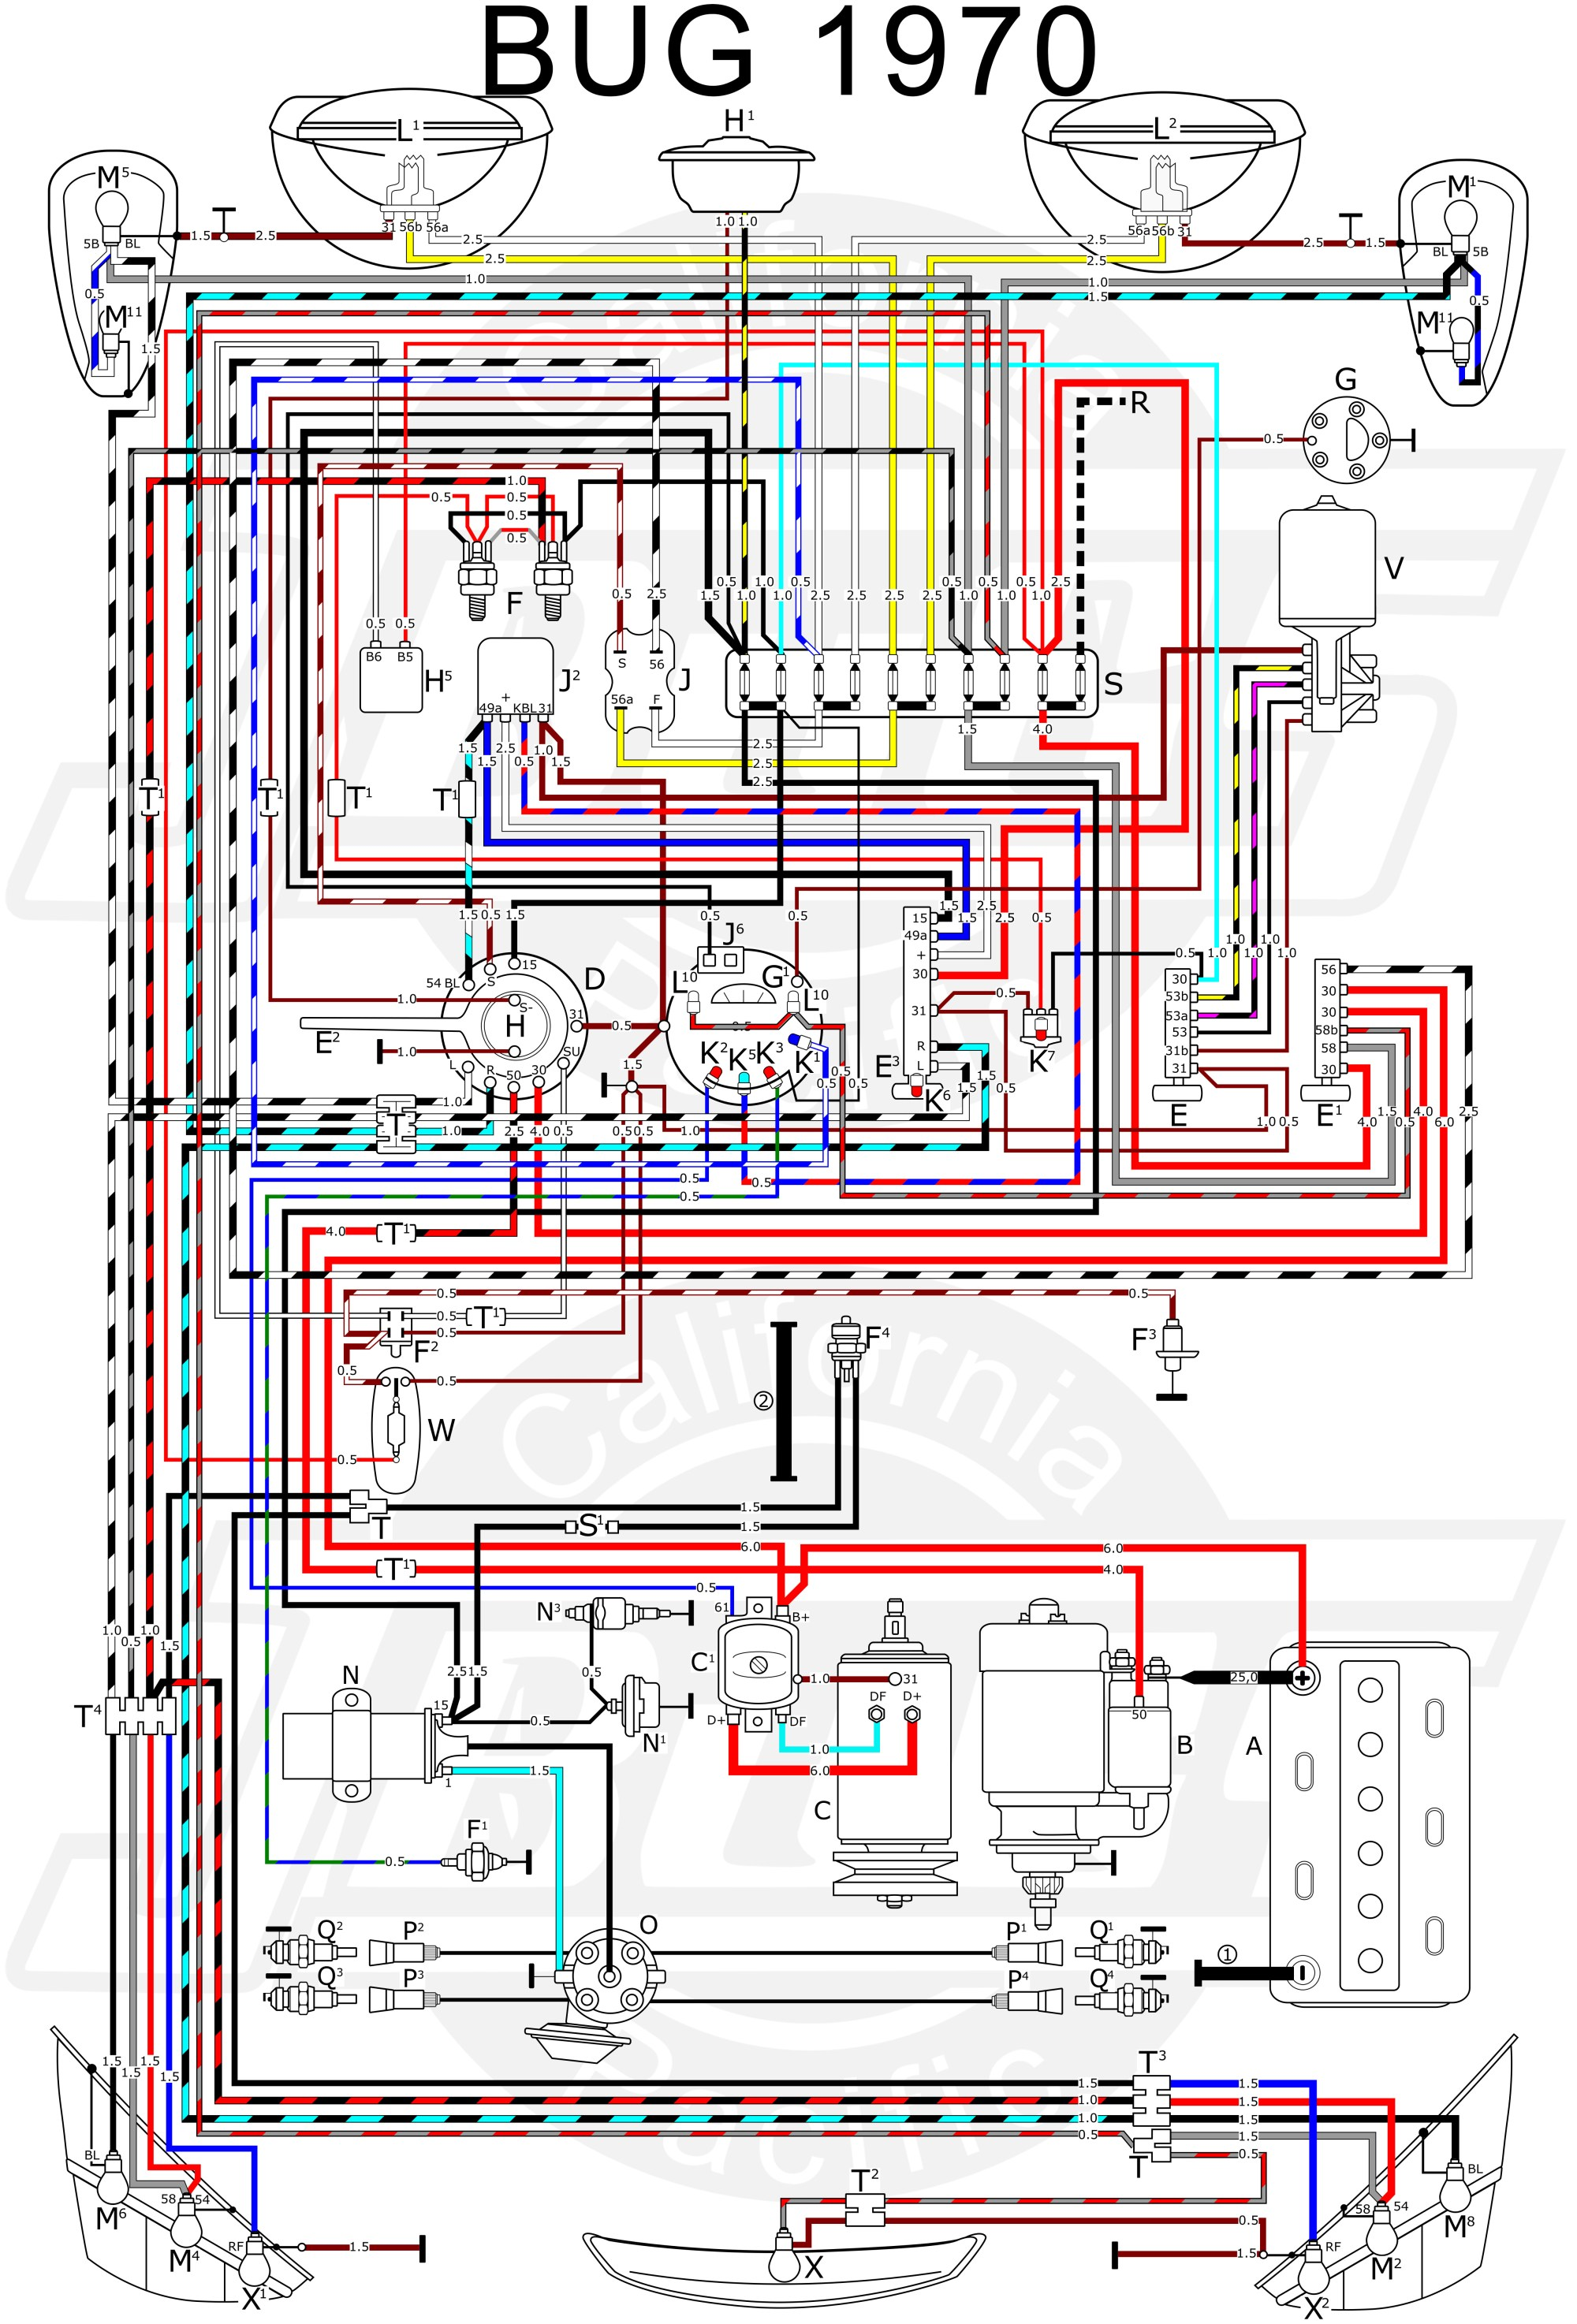 hight resolution of 1972 vw bus engine diagram wire management wiring diagram 1972 vw bus engine diagram wiring